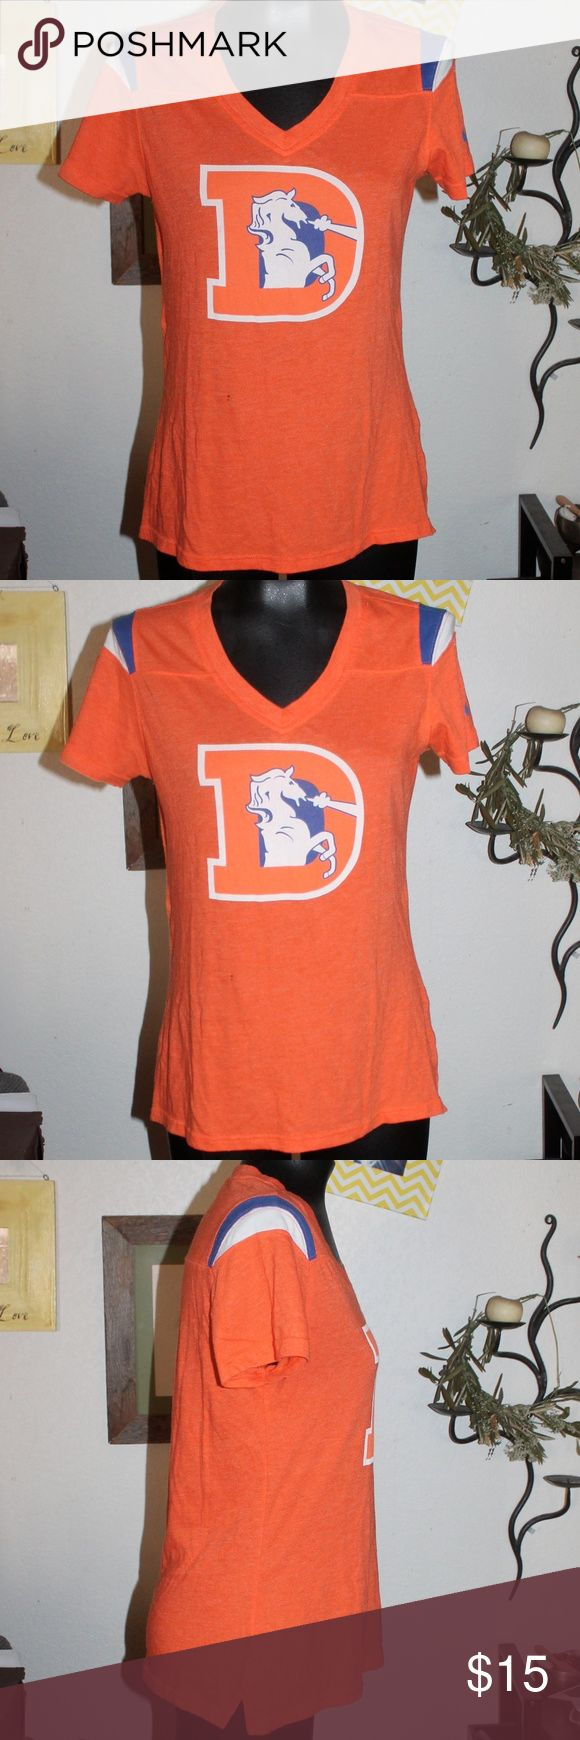 Nike NFL Team Apparel Denver Broncos V neck shirt Nike NFL Team Apparel  Denver Broncos  V neck shirt size M made in Vietnam RN#56323 CA#05553  60% cotton 40% polyester exclusive of decoration  FA130105BOV M 573274-827 659658405318  *one tiny little snag that i photographed next to a dime - very small and not noticeable :) Nike Tops